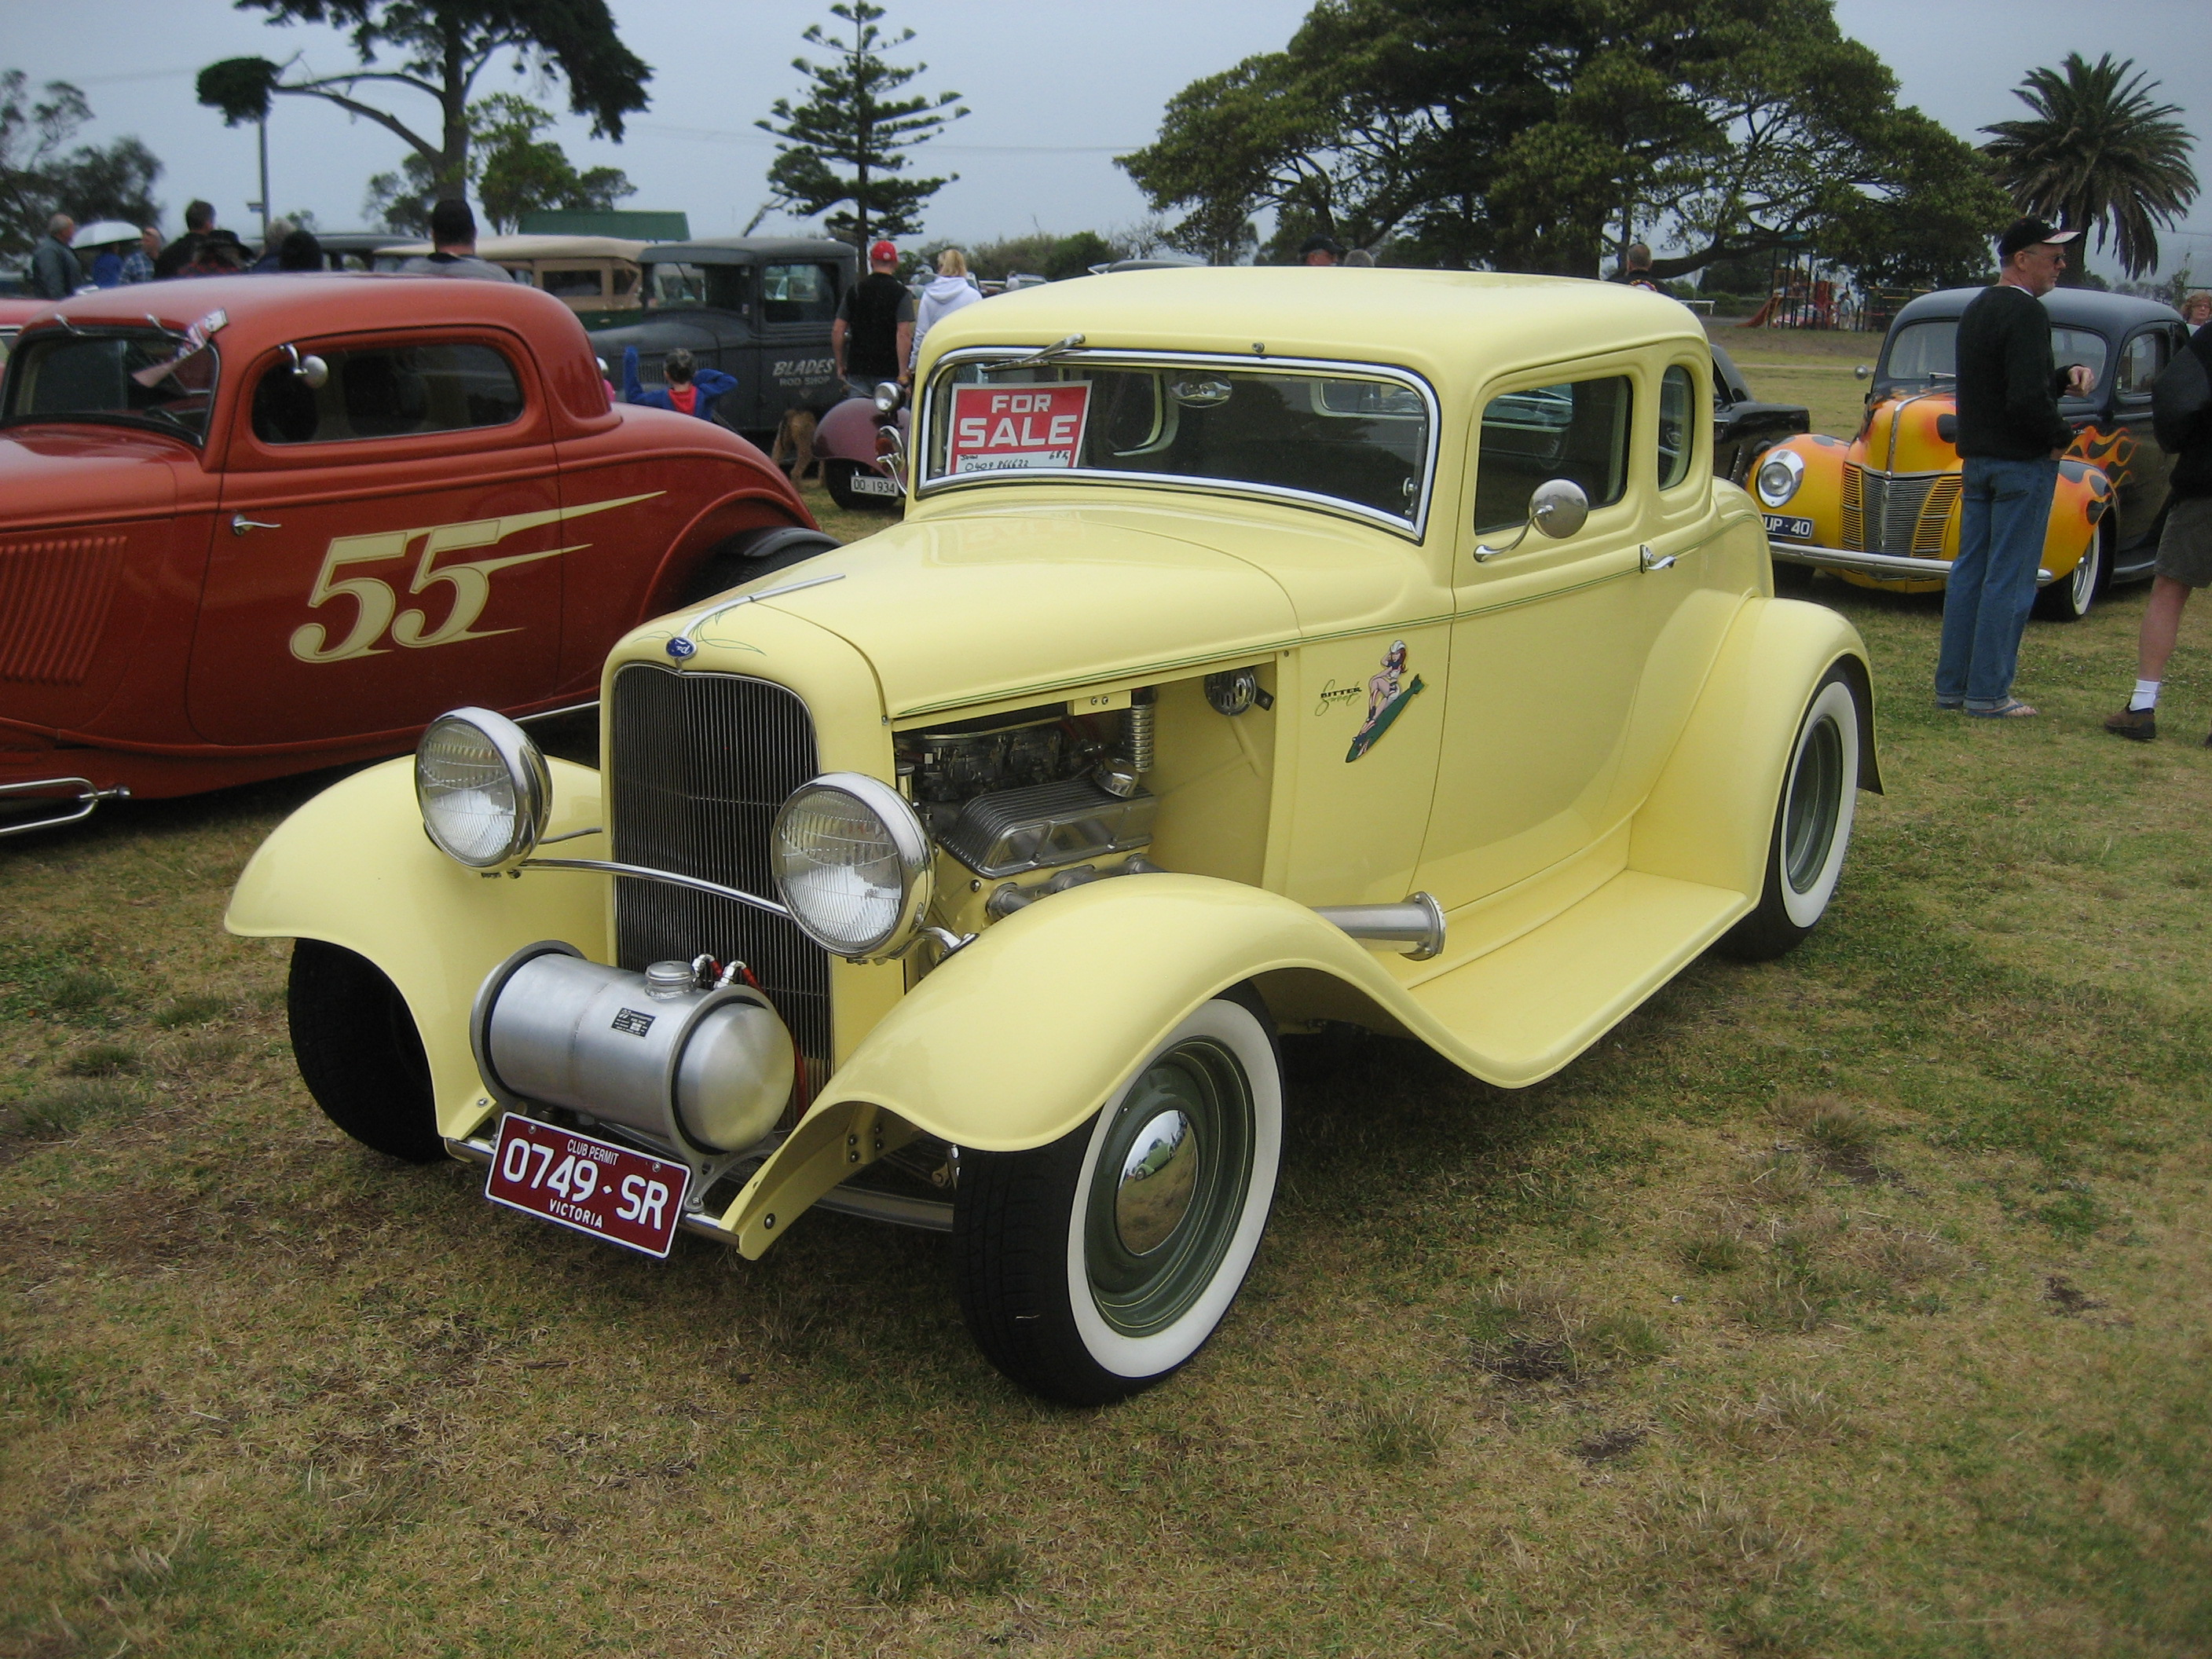 File:1932 Ford 5 Window Coupe Hot Rod.jpg - Wikimedia Commons